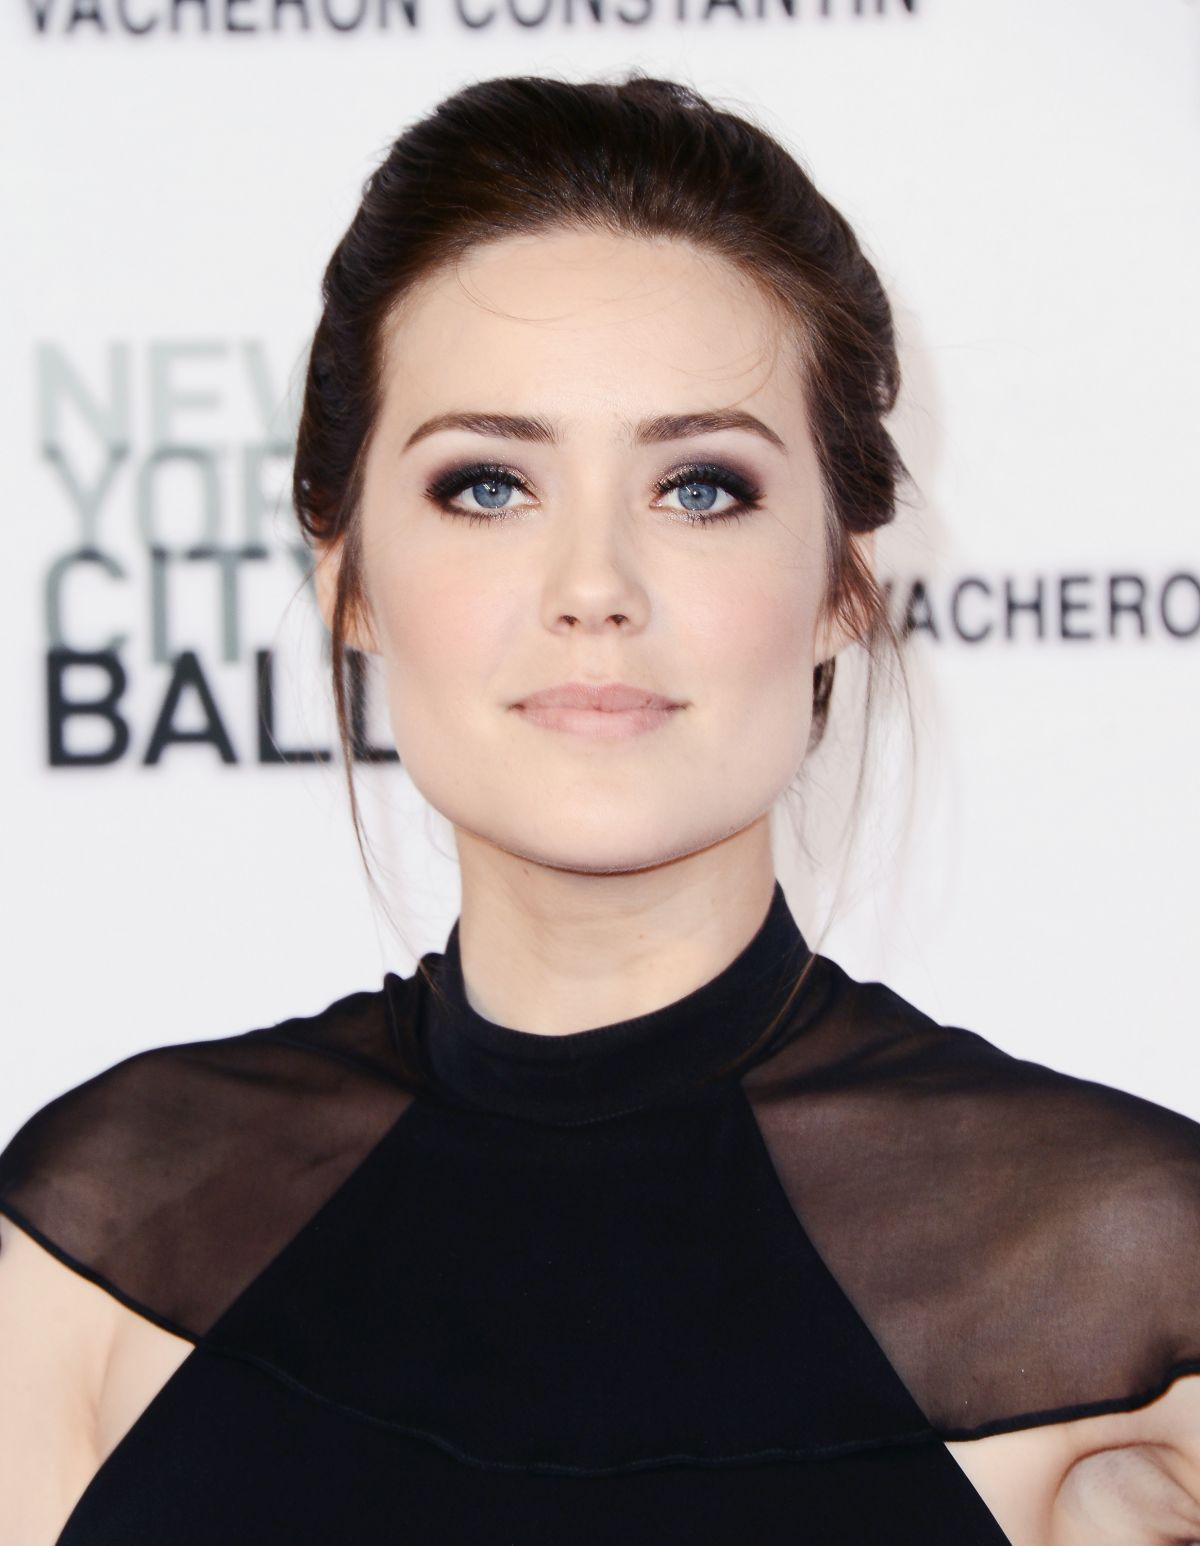 Hacked Megan Boone nudes (93 photo), Topless, Hot, Selfie, underwear 2015